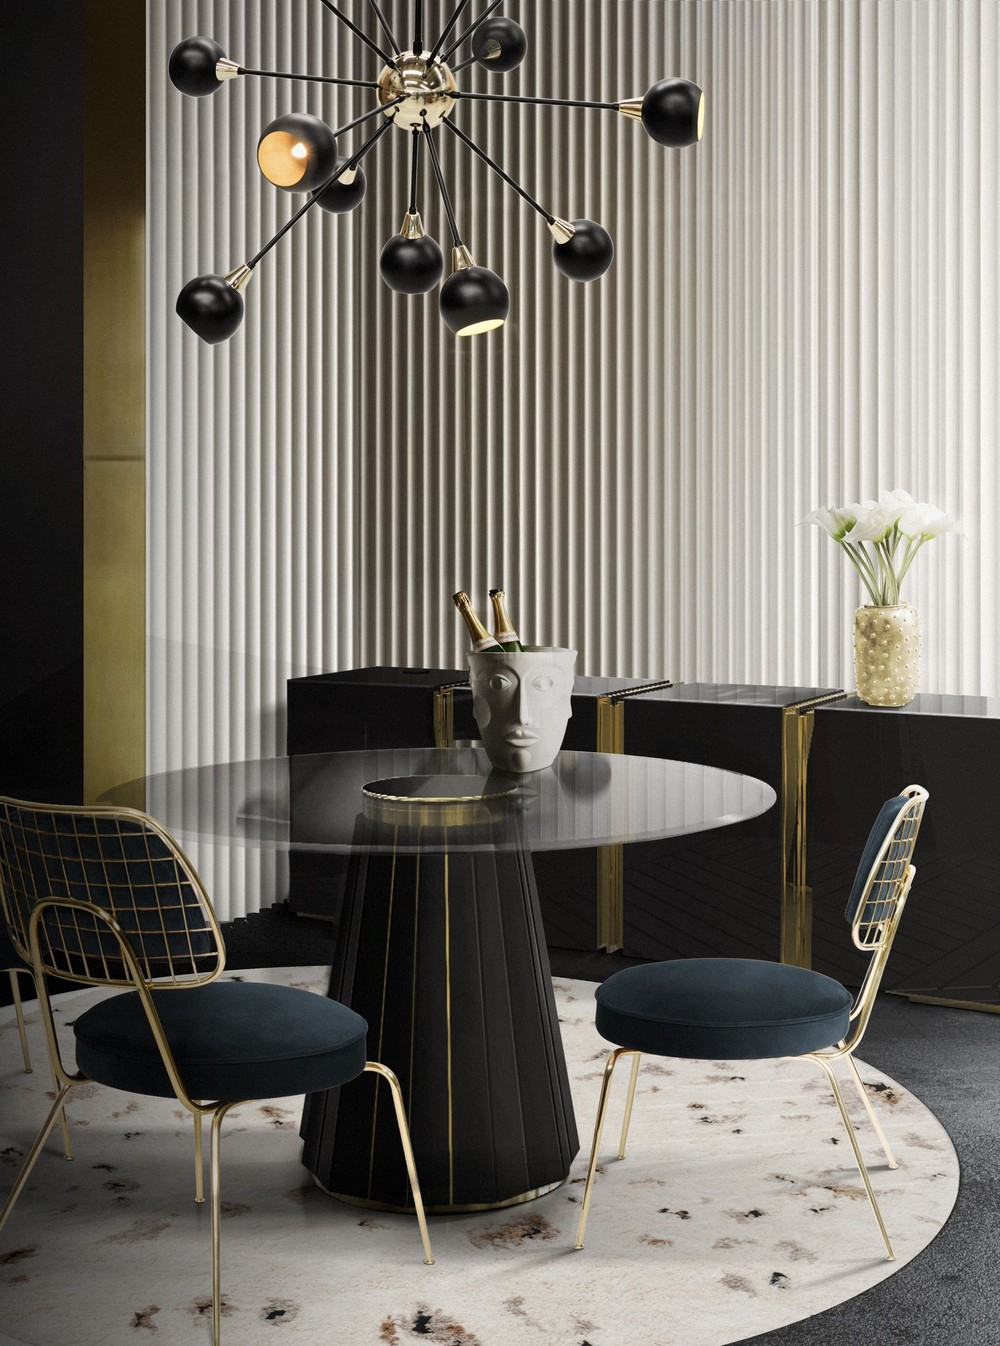 dining tables The Perfect Element For Stylish Settings: 25 Dining Tables You'll Love eSqU7AHQ modern dining tables 25 Modern Dining Tables With A Luxury Design eSqU7AHQ